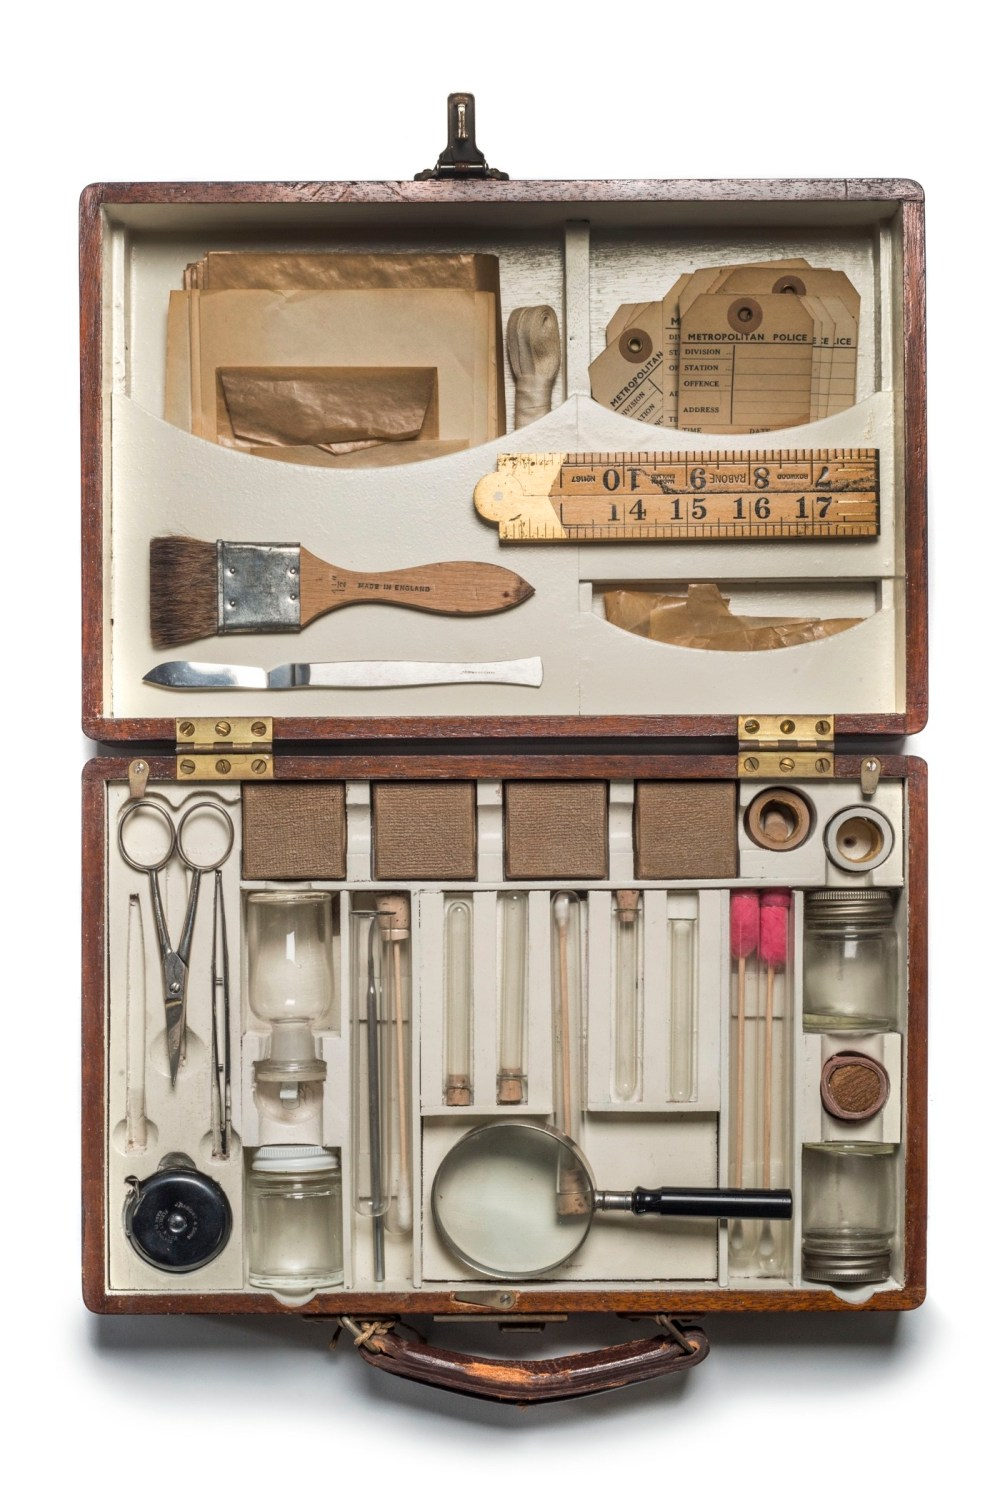 Murder bag: a forensics kit used by detectives attending crime scenes © Museum of London